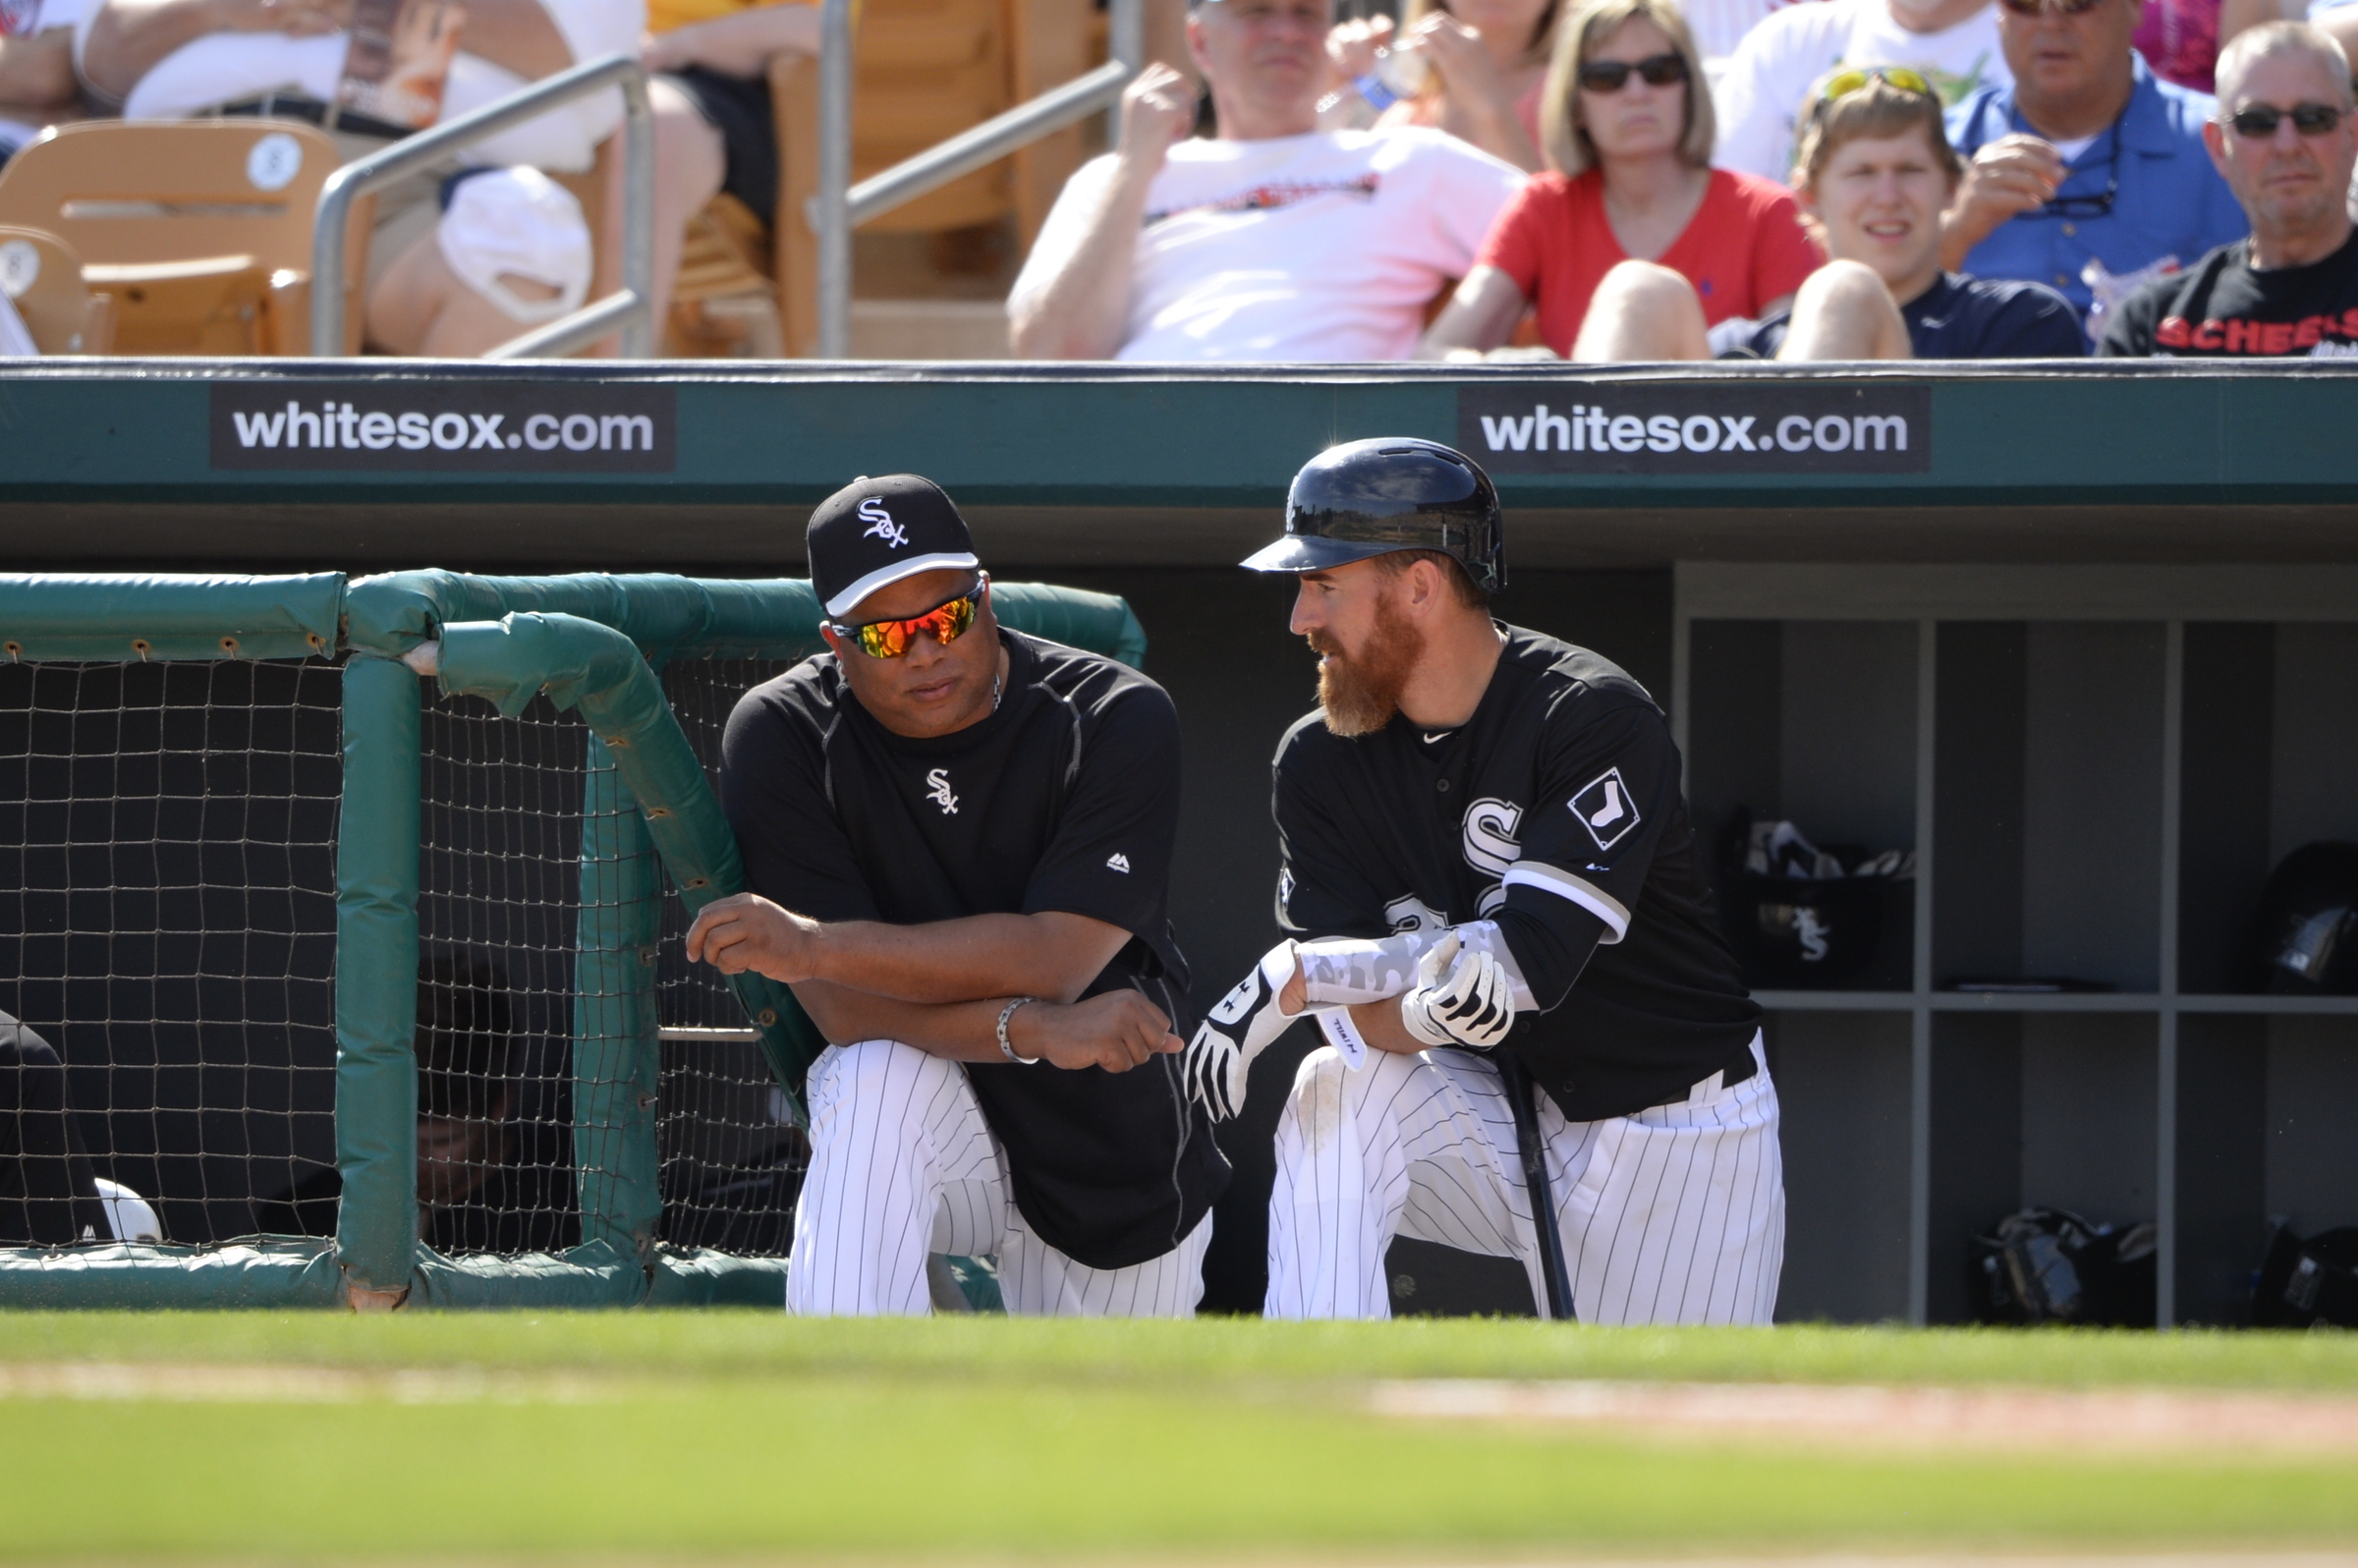 Five Batting Tips from a Chicago White Sox Hitting Coach